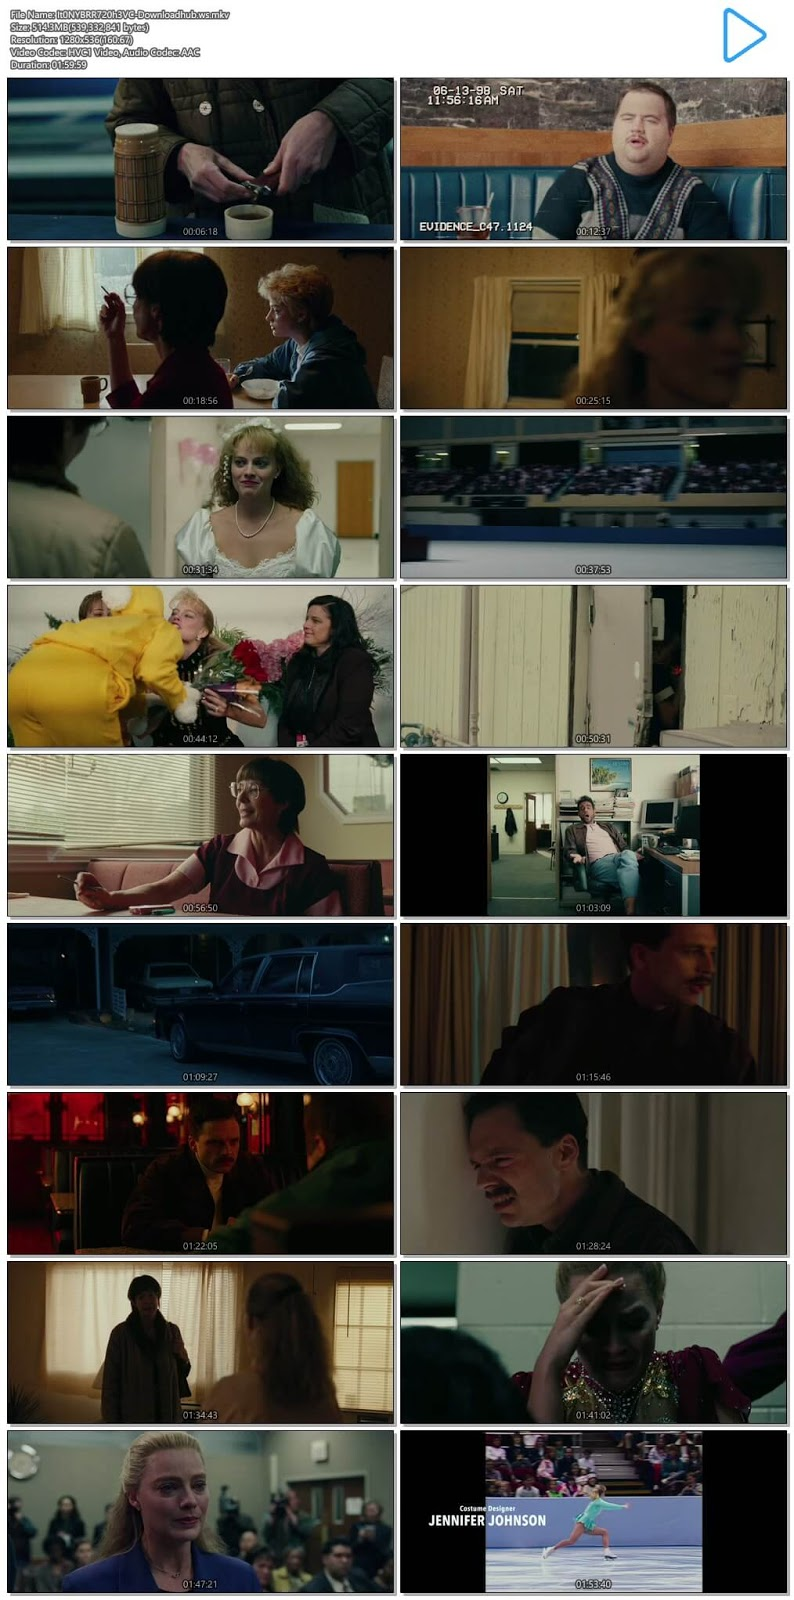 I, Tonya 2017 English 720p HEVC BRRip ESubs